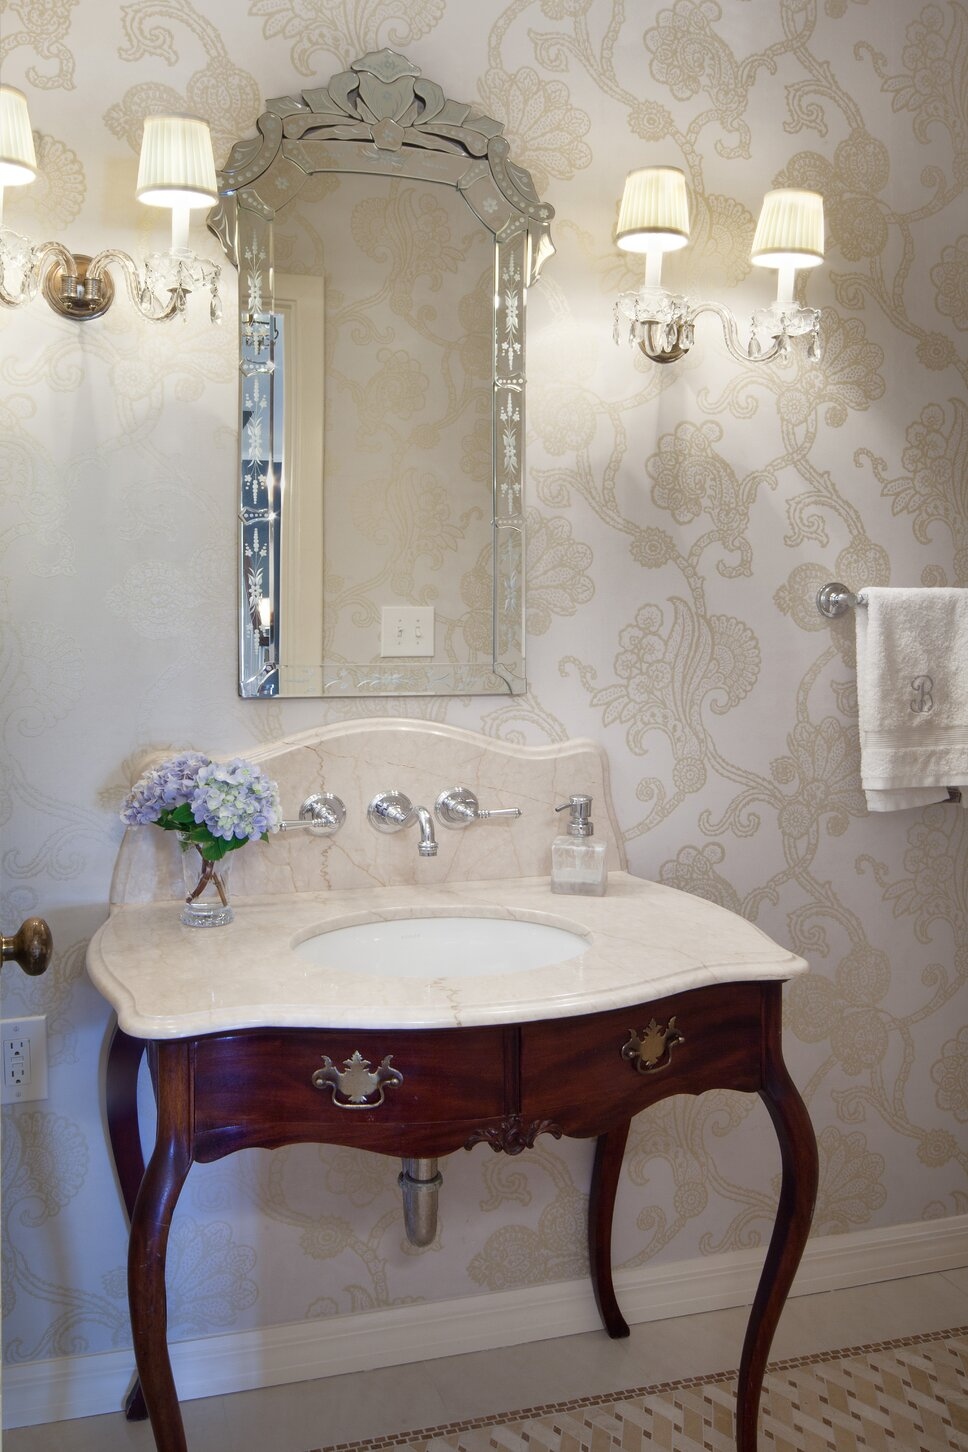 Powder Room with repurposed antique as vanity, venetian style mirror and vintage crystal sconces set against a muted blue and gold wallpaper Traditional Bathroom design